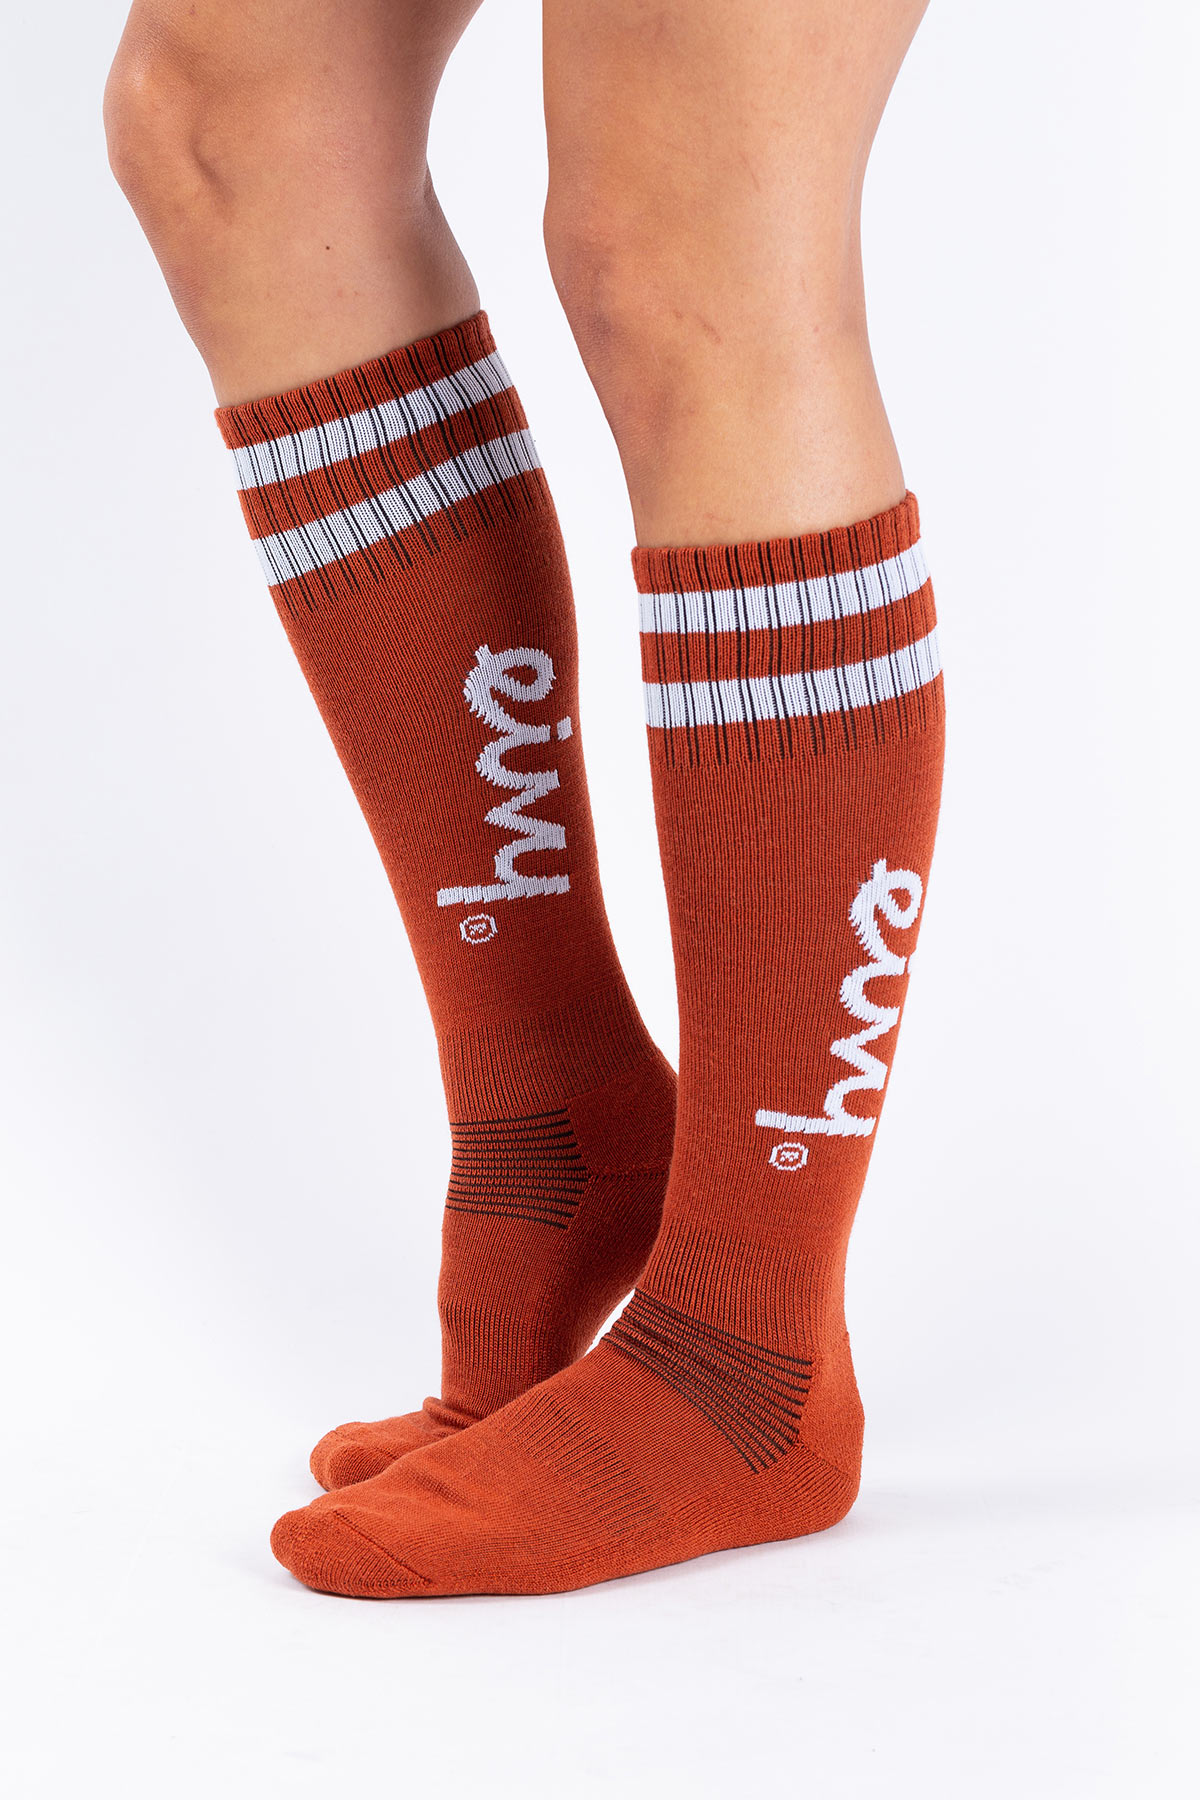 Socks | Cheerleader Wool - Rustic